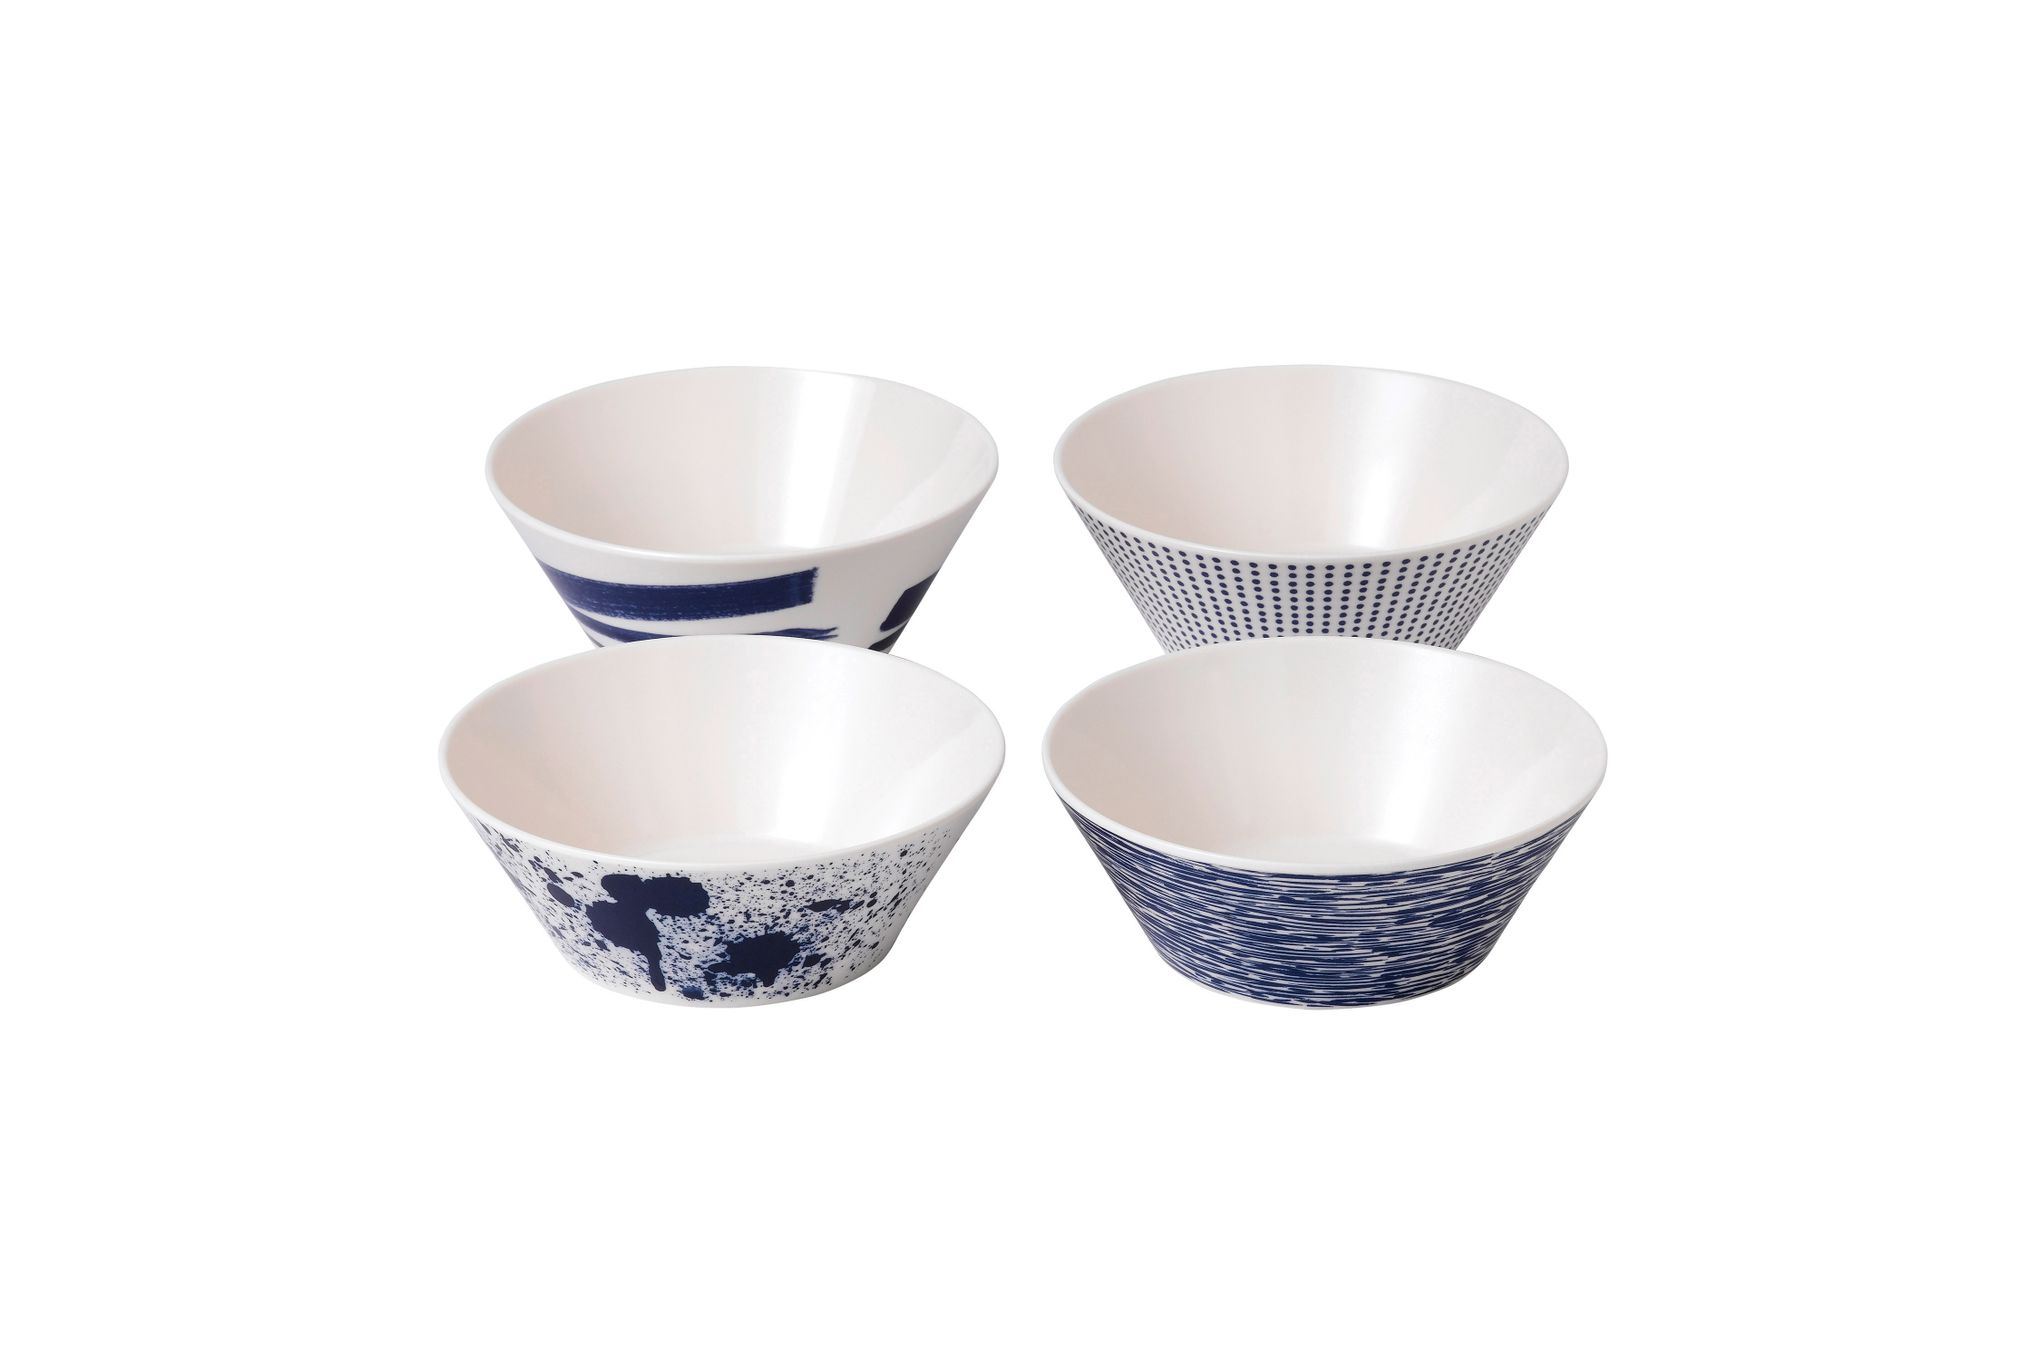 Royal Doulton Outdoor Living - Pacific Cereal Bowl - Set of 4 Melamine 15cm thumb 1